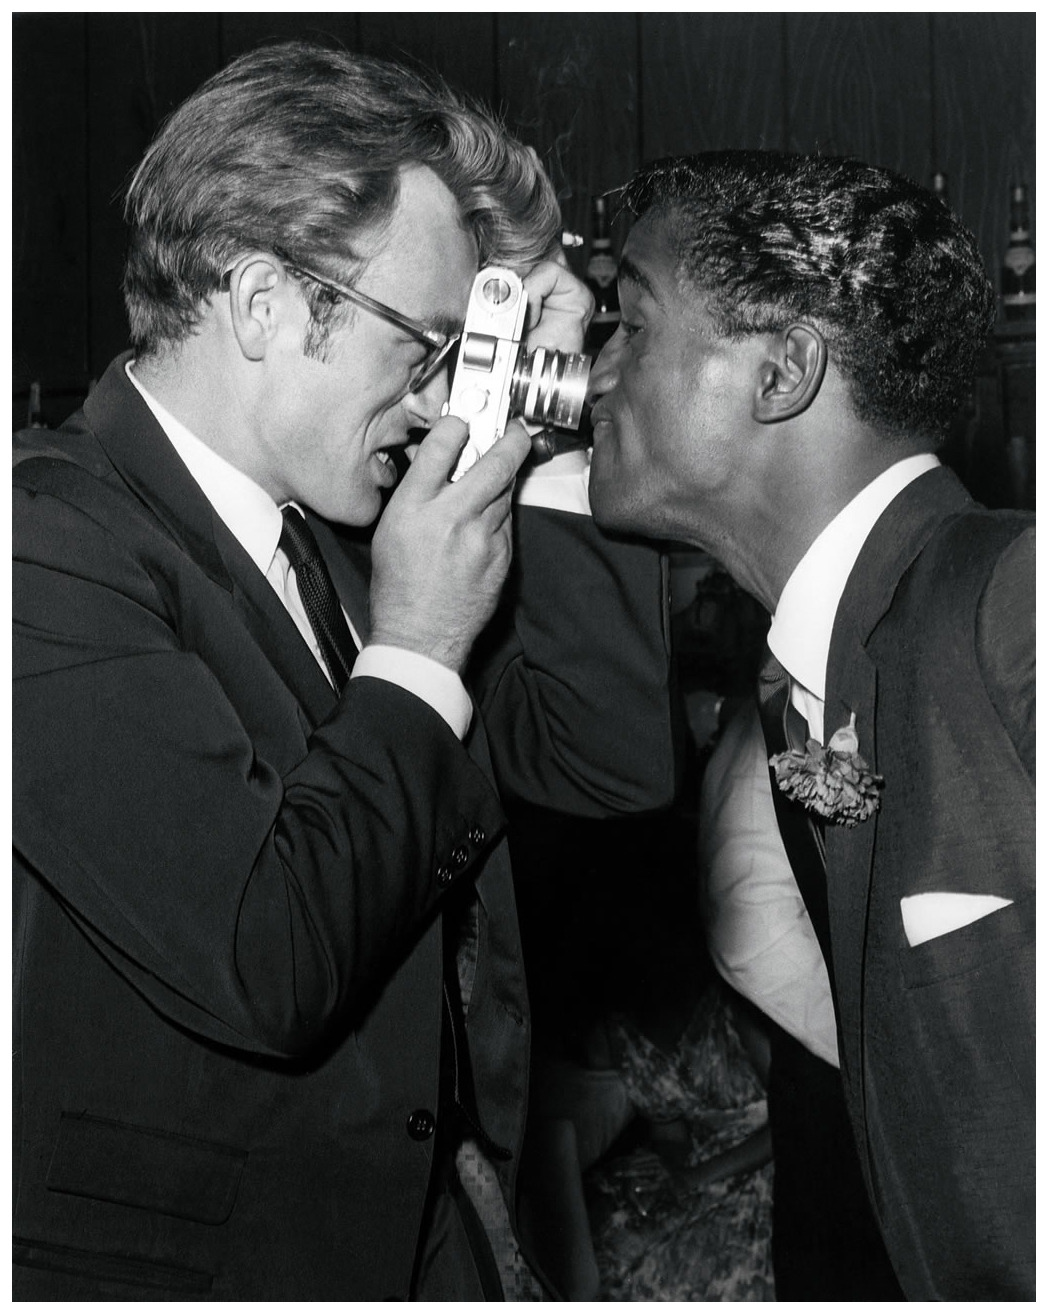 James Dean and Sammy Davis Jr. at Villa Capri. Photo by Darlene Hammond, 1955. [x]